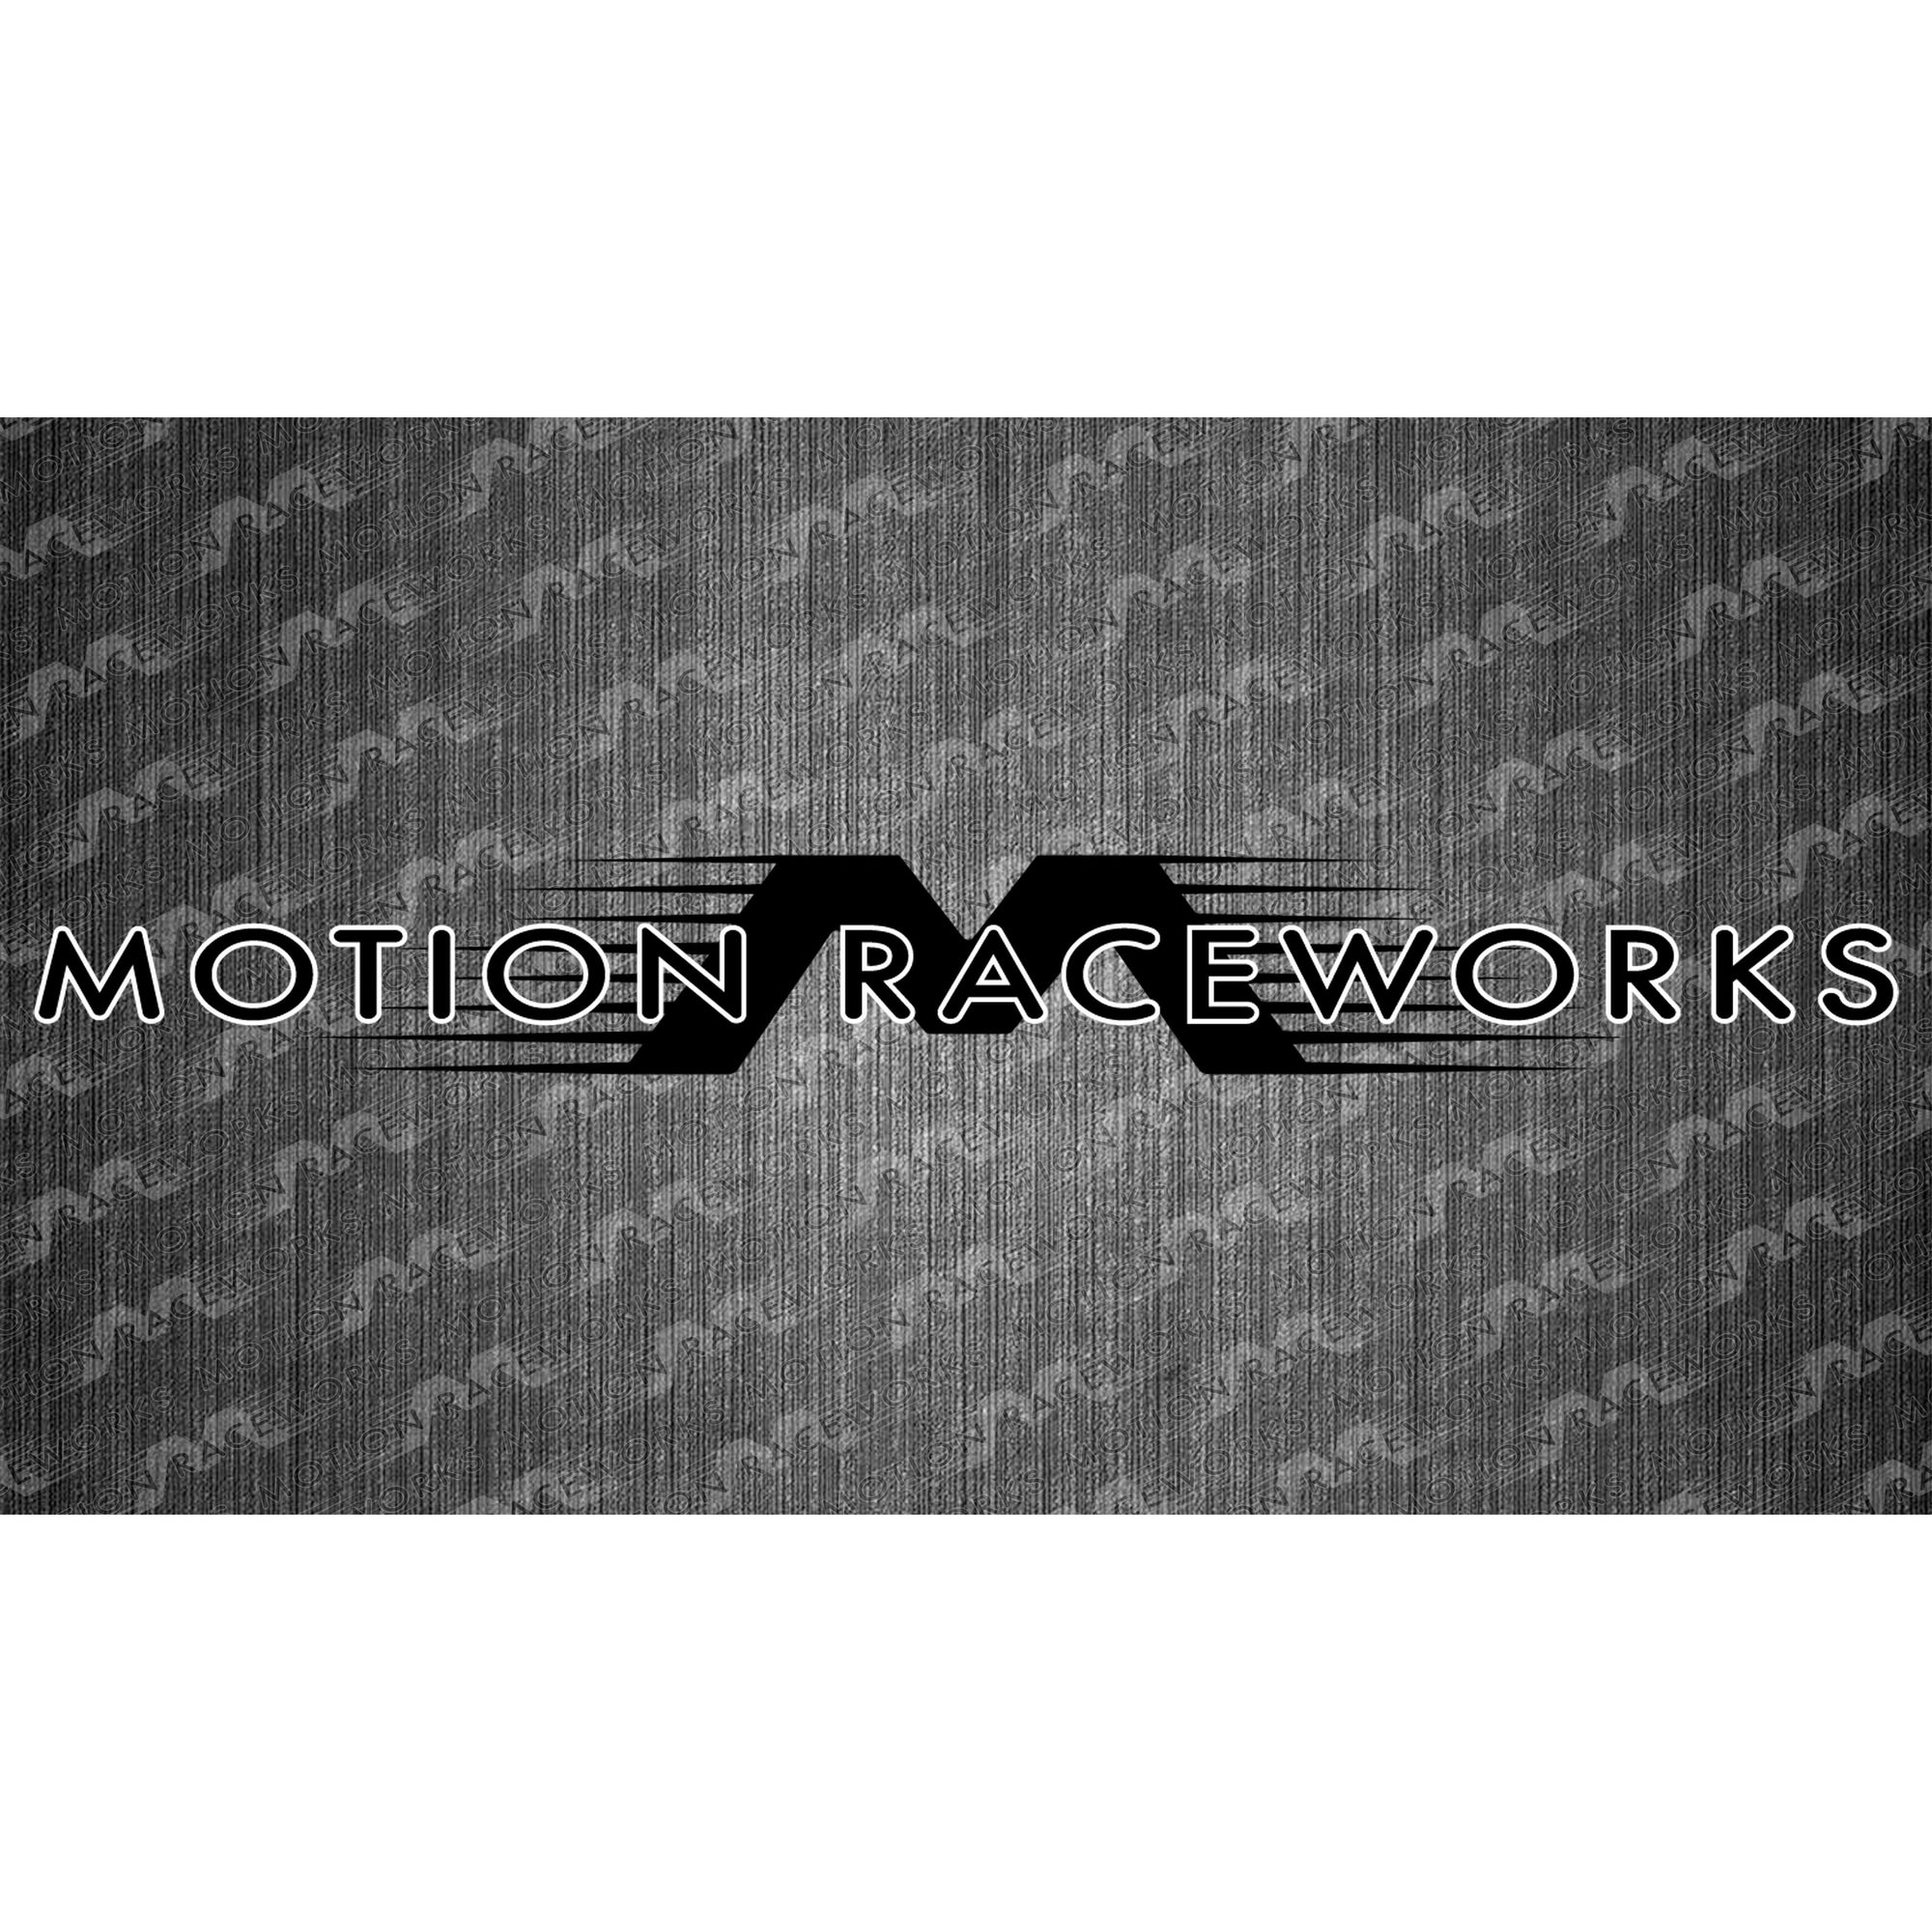 "Black/White Motion Raceworks Decal 8""x2""-Motion Raceworks-Motion Raceworks"